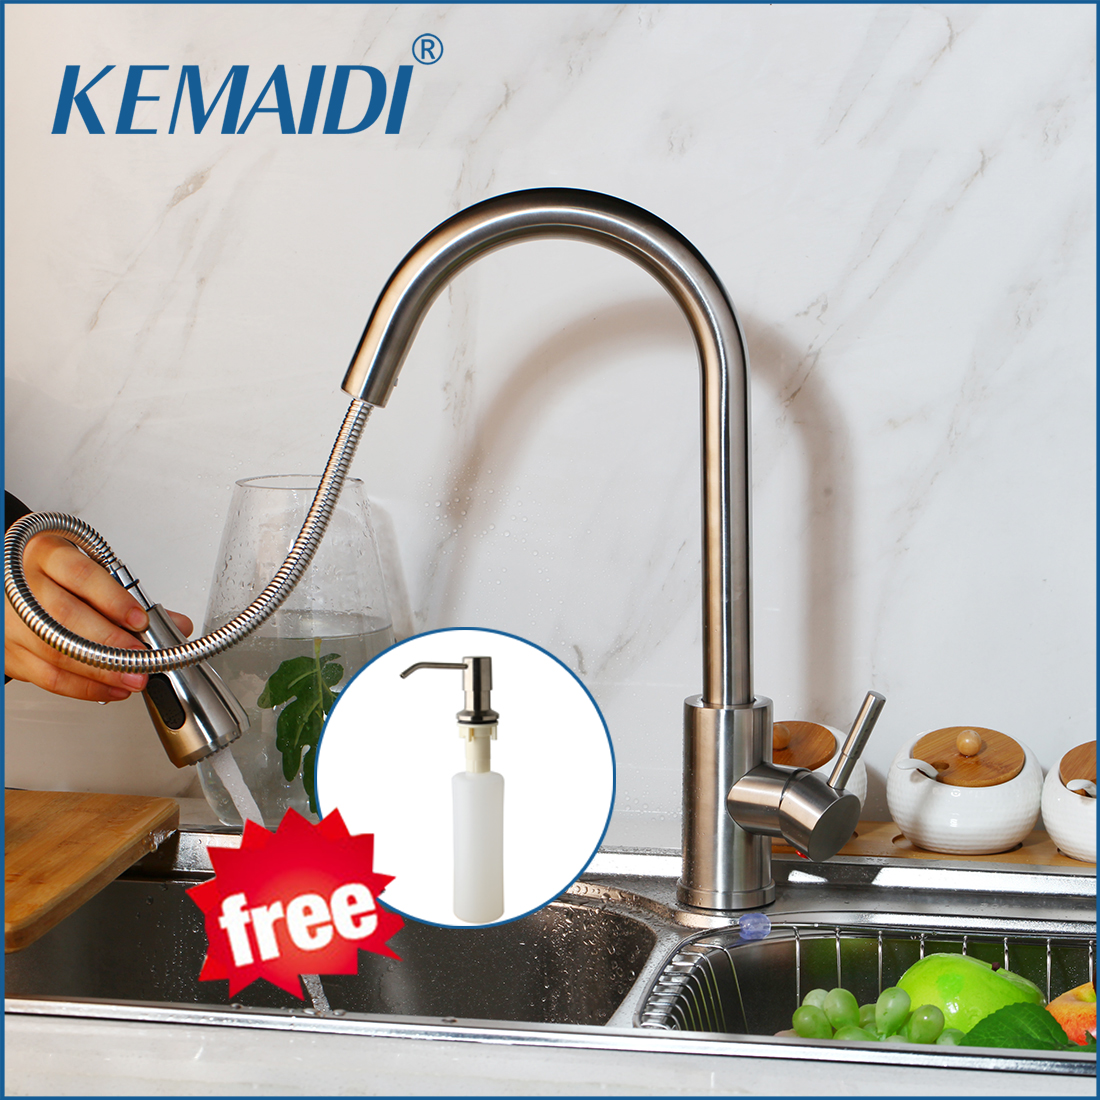 KEMAIDI Kitchen Faucet Brushed Nickel Black Chrome Swivel Mixer Tap Pull Out Spray Kitchen Tap Mixer